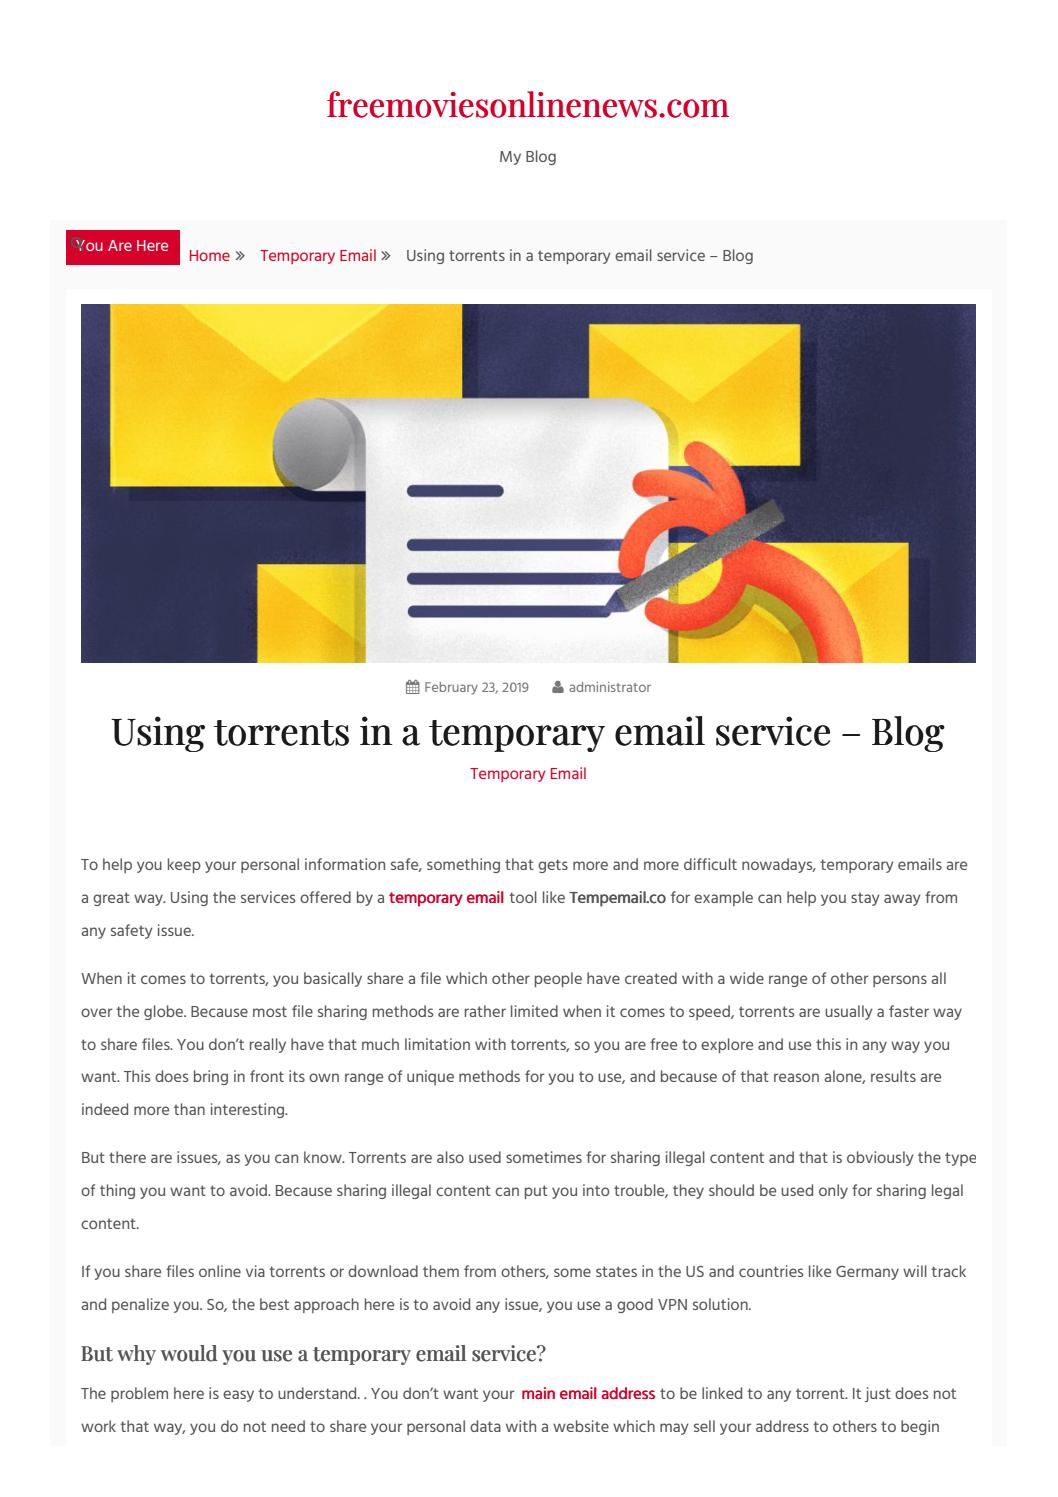 Using torrents in a temporary email service – Blog by